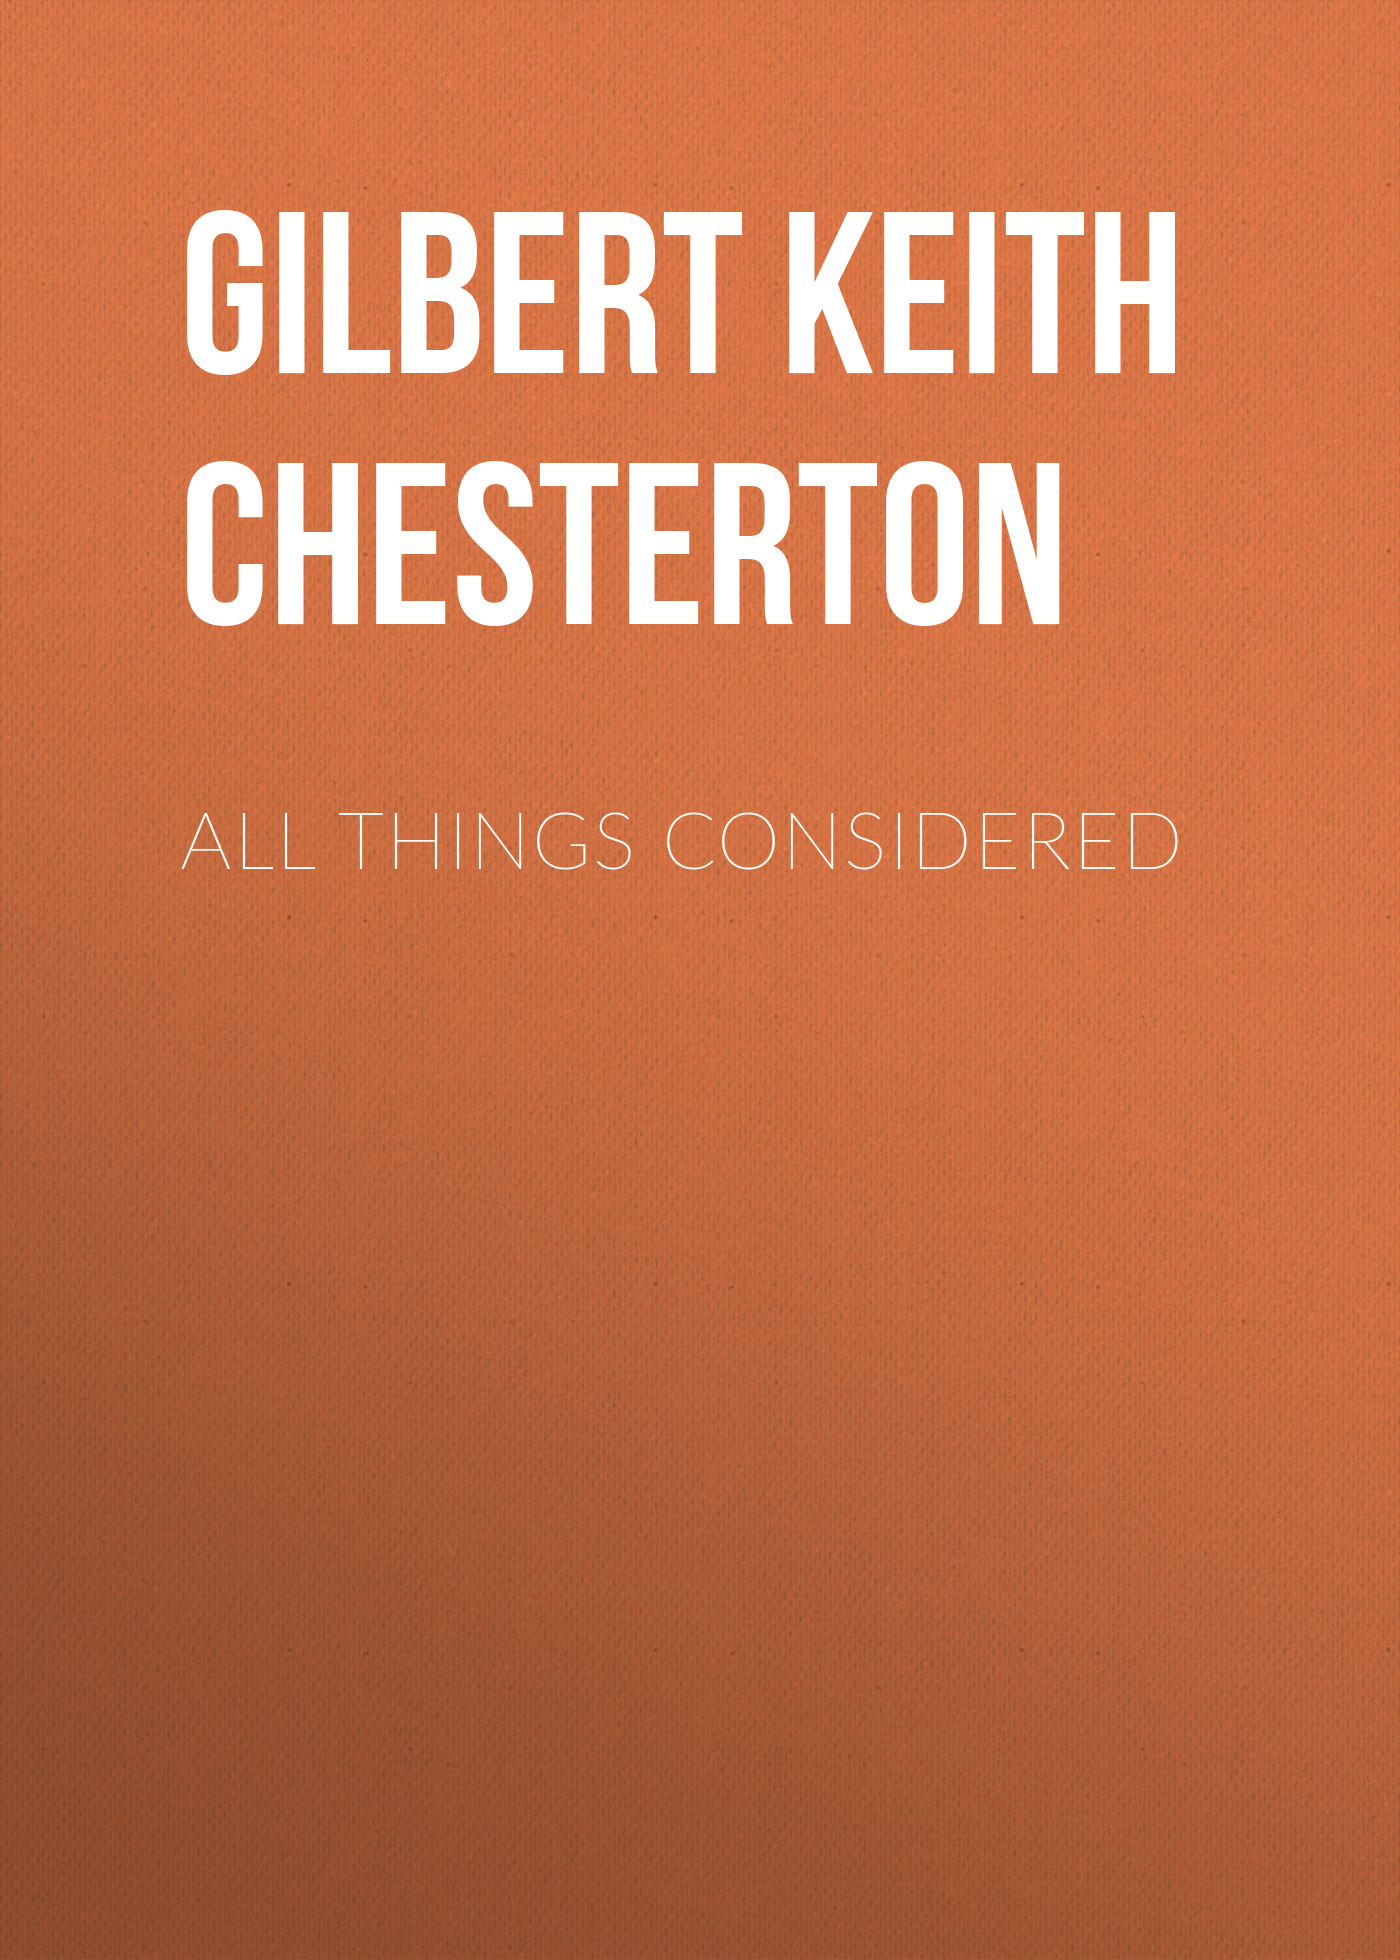 Gilbert Keith Chesterton All Things Considered gilbert keith chesterton o napoleão de notting hill